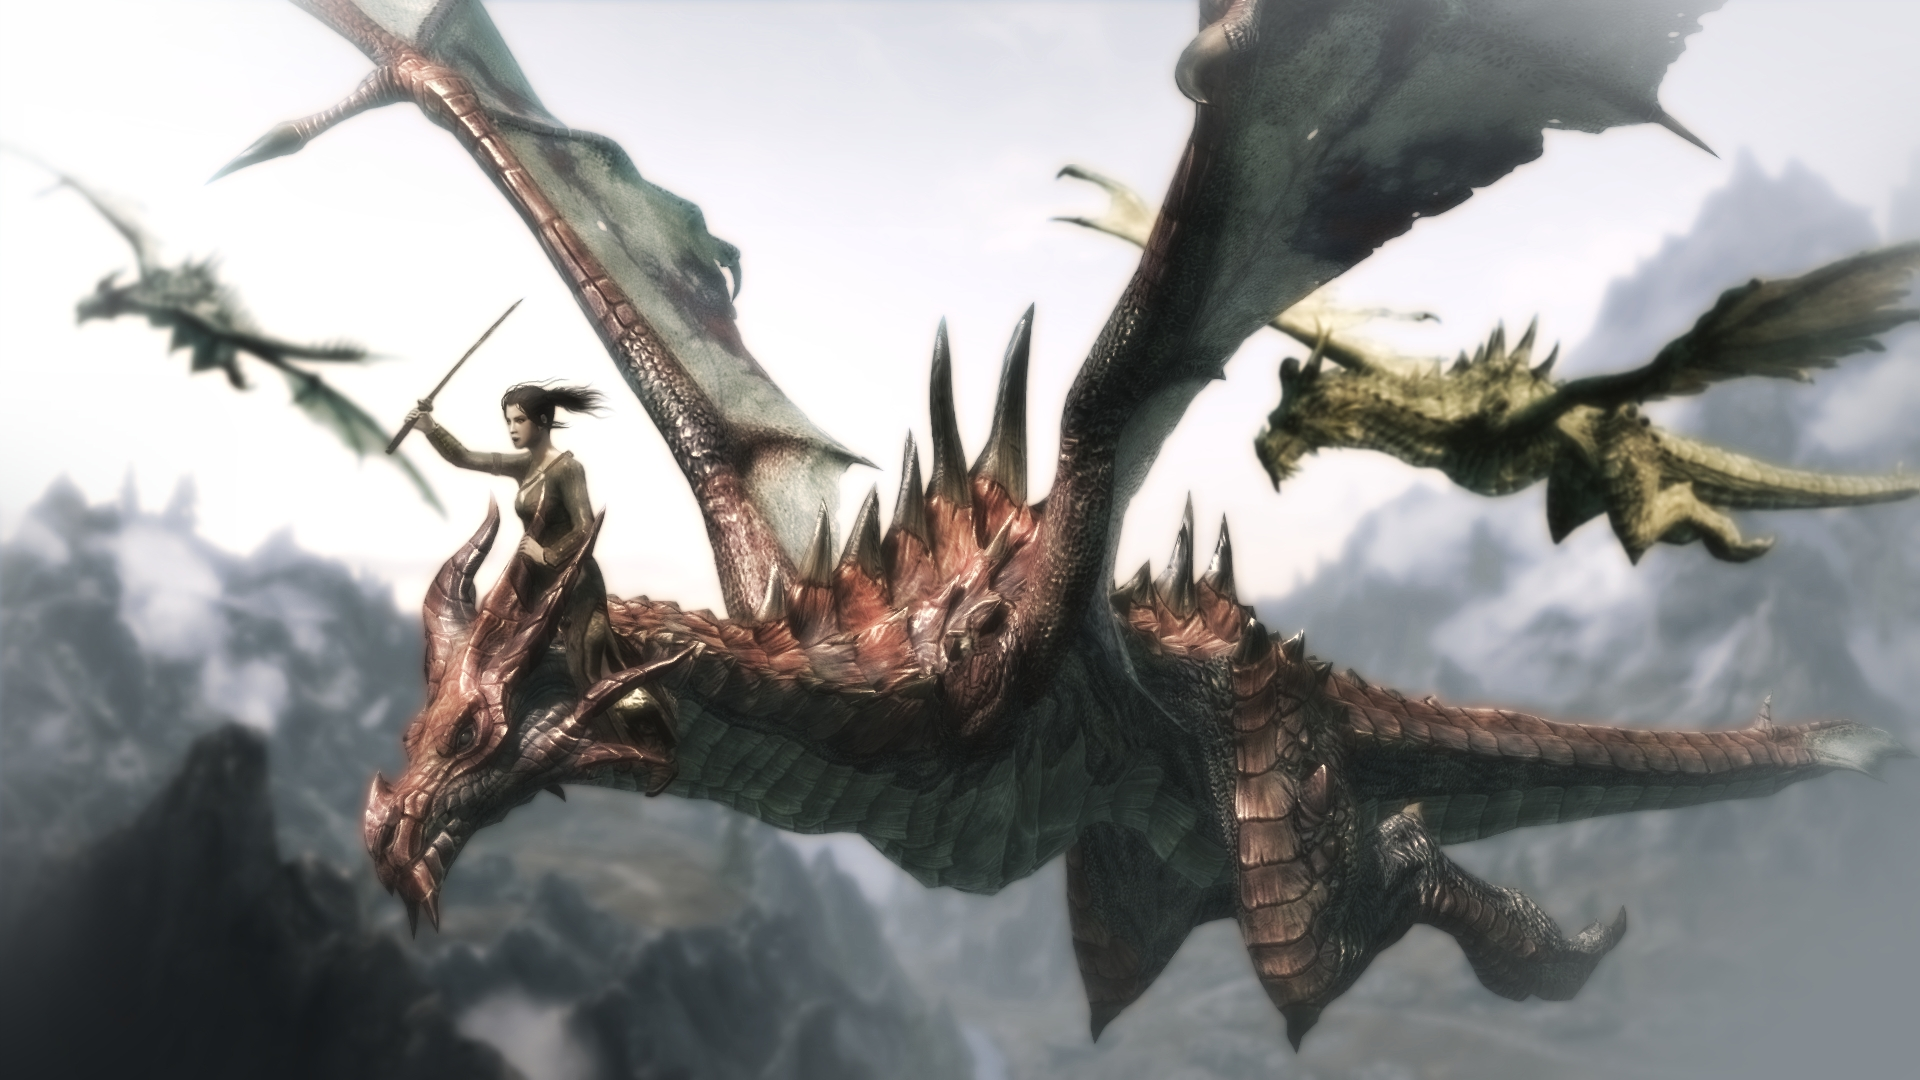 Flying Dragon: Flying With The Dragons By Amnis406 On DeviantArt